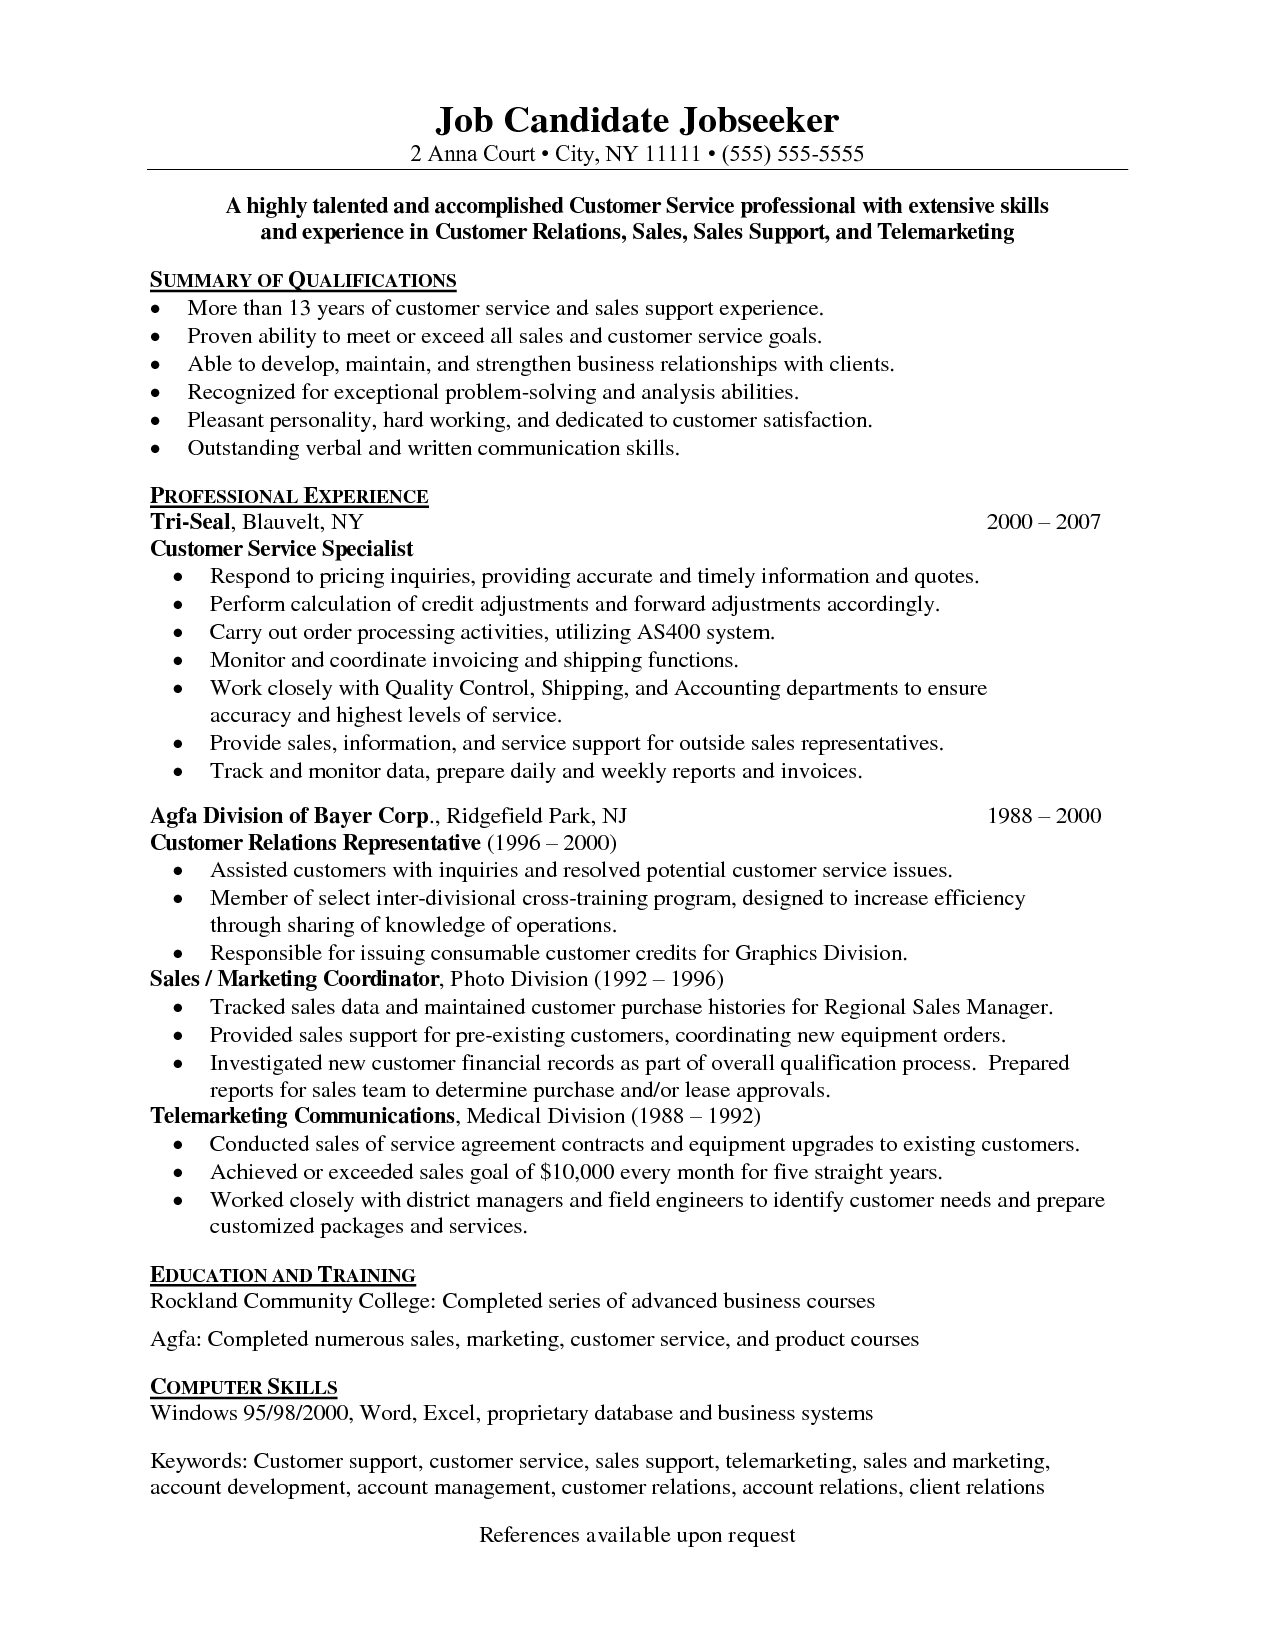 Opposenewapstandardsus  Winning Customer Service Resume Format  Roiinvestingcom With Fetching Customer Service Resume Format  With Archaic Technical Writer Resume Also Summary In Resume In Addition Online Resume Builder Free And How Make A Resume As Well As Additional Skills On Resume Additionally Difference Between A Cv And A Resume From Roiinvestingcom With Opposenewapstandardsus  Fetching Customer Service Resume Format  Roiinvestingcom With Archaic Customer Service Resume Format  And Winning Technical Writer Resume Also Summary In Resume In Addition Online Resume Builder Free From Roiinvestingcom